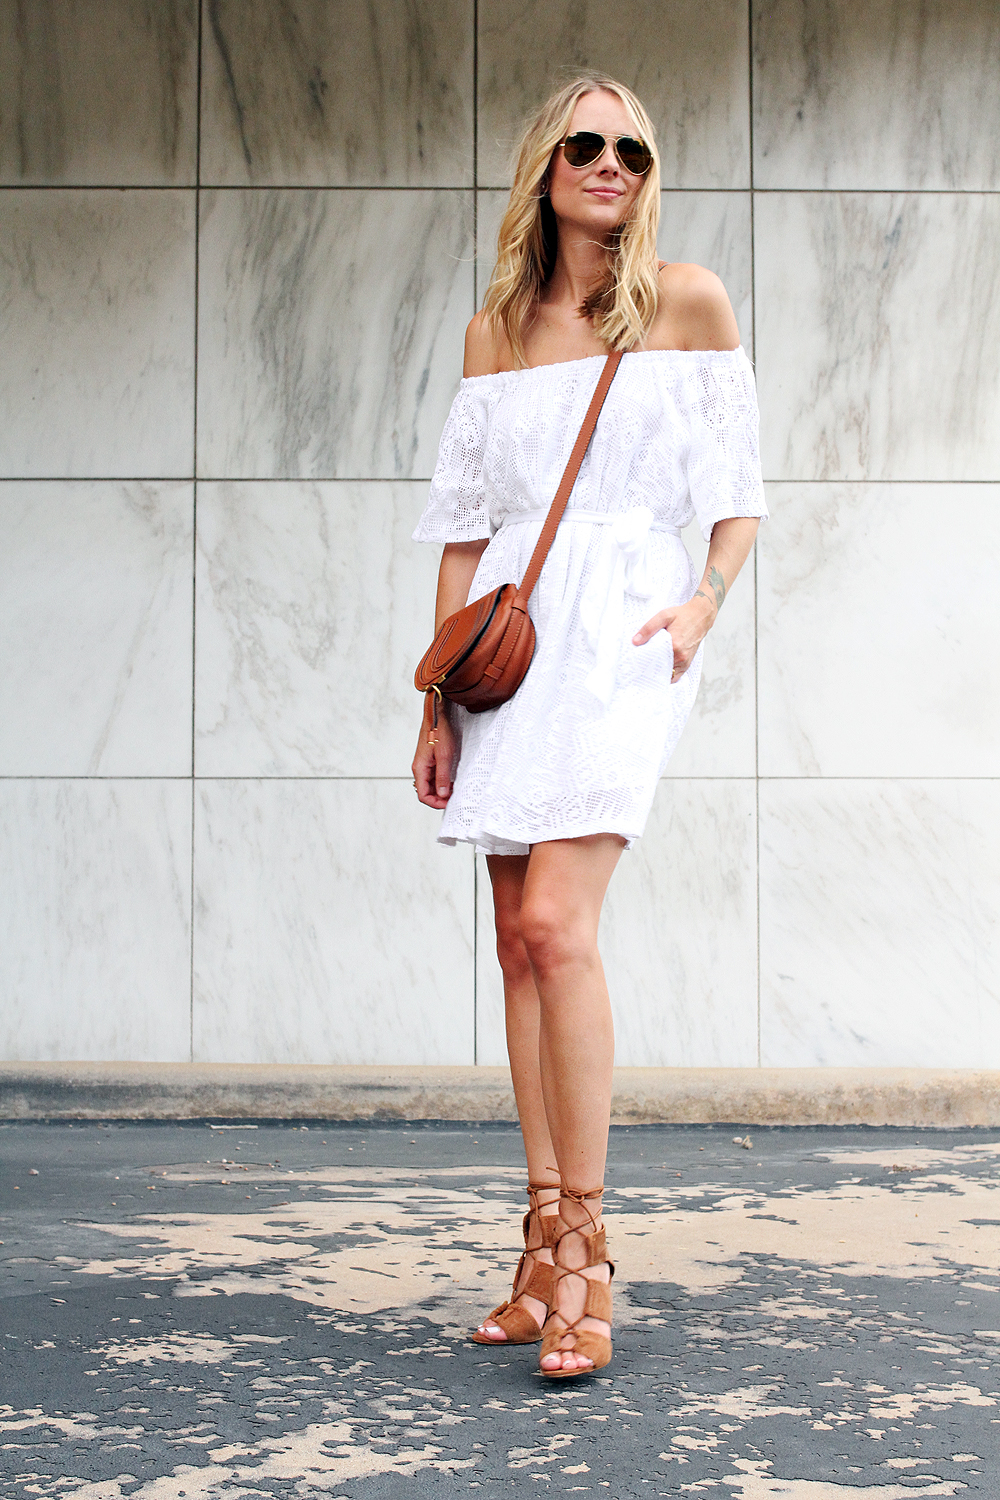 fashion-jackson-zara-tan-lace-up-heels-banana-republic-white-lace-off-the-shoulder-dress-chloe-tan-marcie-crossbody